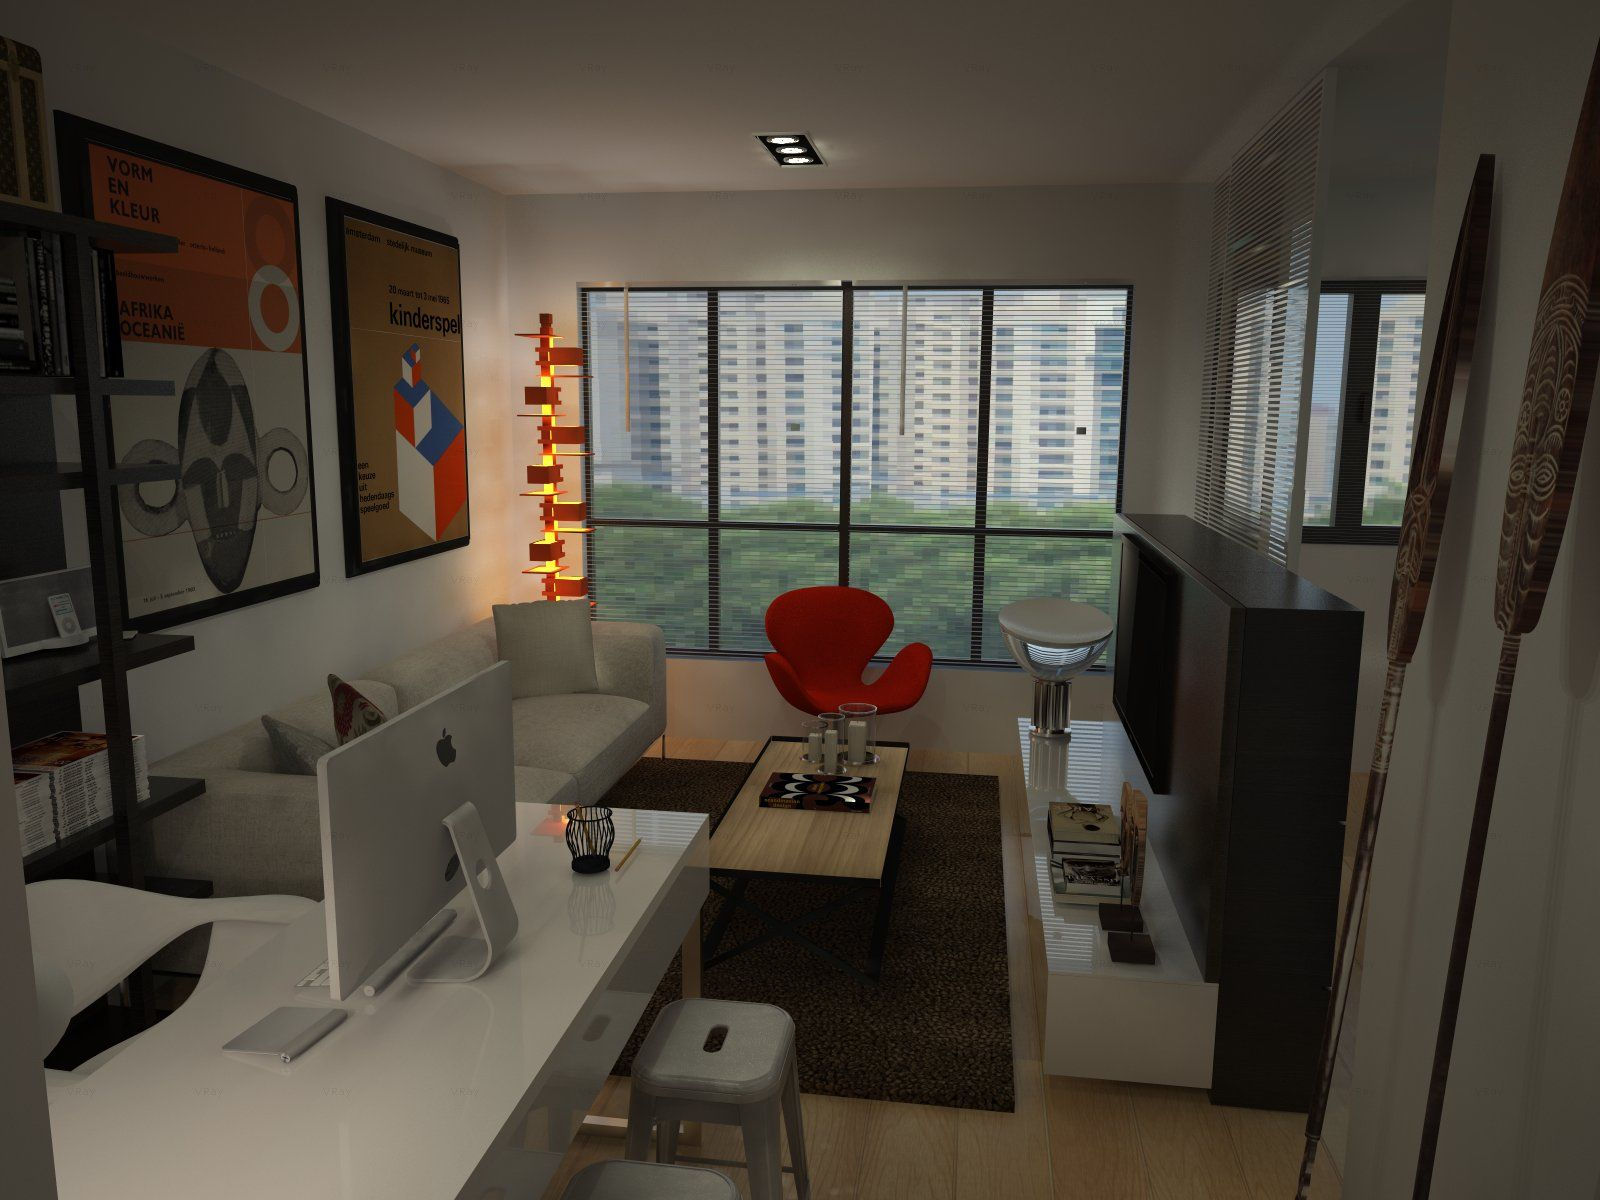 Hdb bto for singles 2 room 47sqm hdb apartment in for Flat interior design ideas